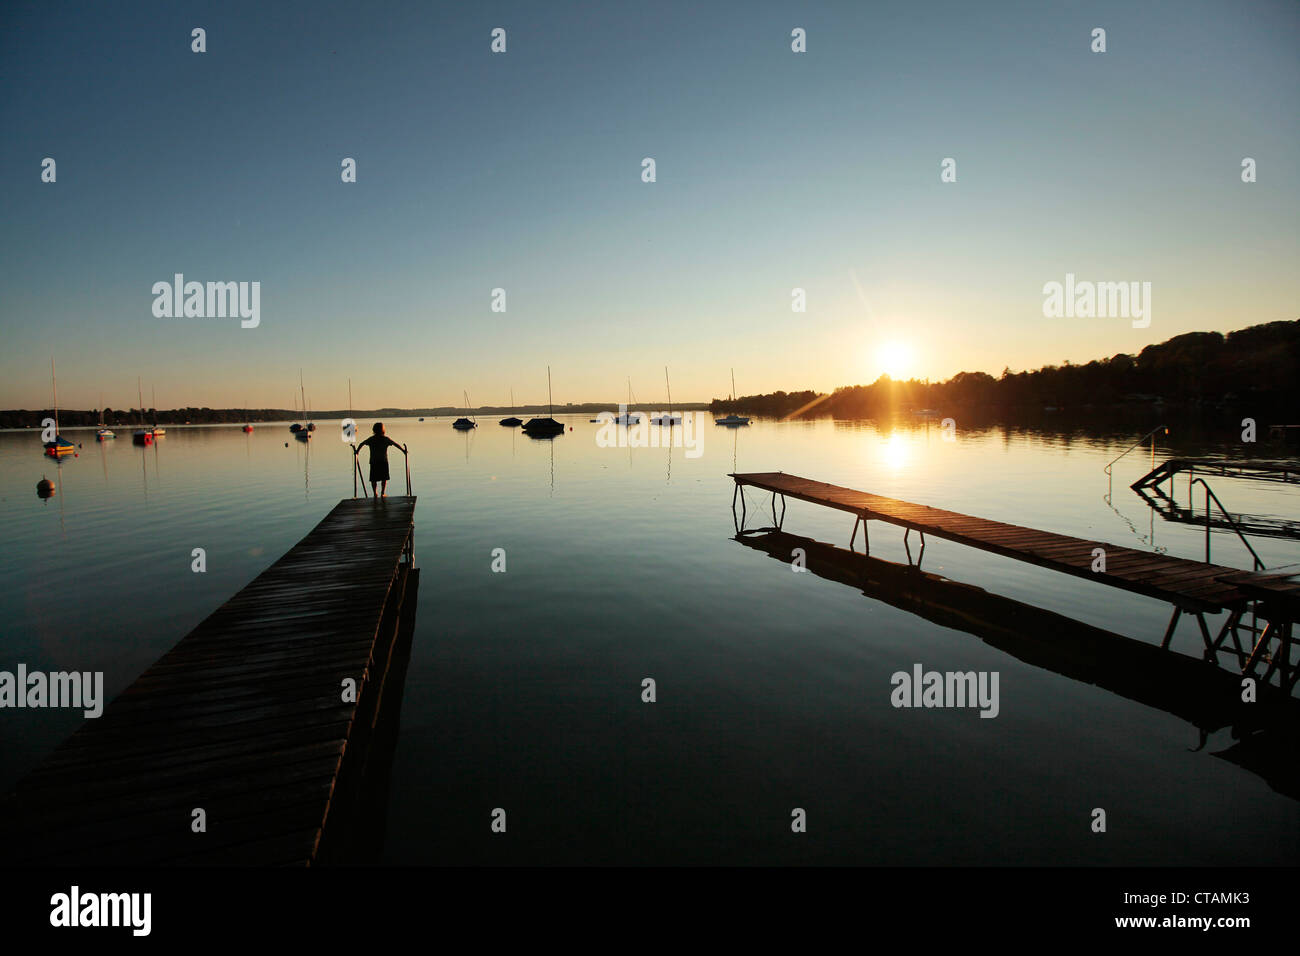 Child on a wooden jetty at sunset, Lake Woerthsee, Starnberg, Upper Bavaria, Bavaria, Germany - Stock Image